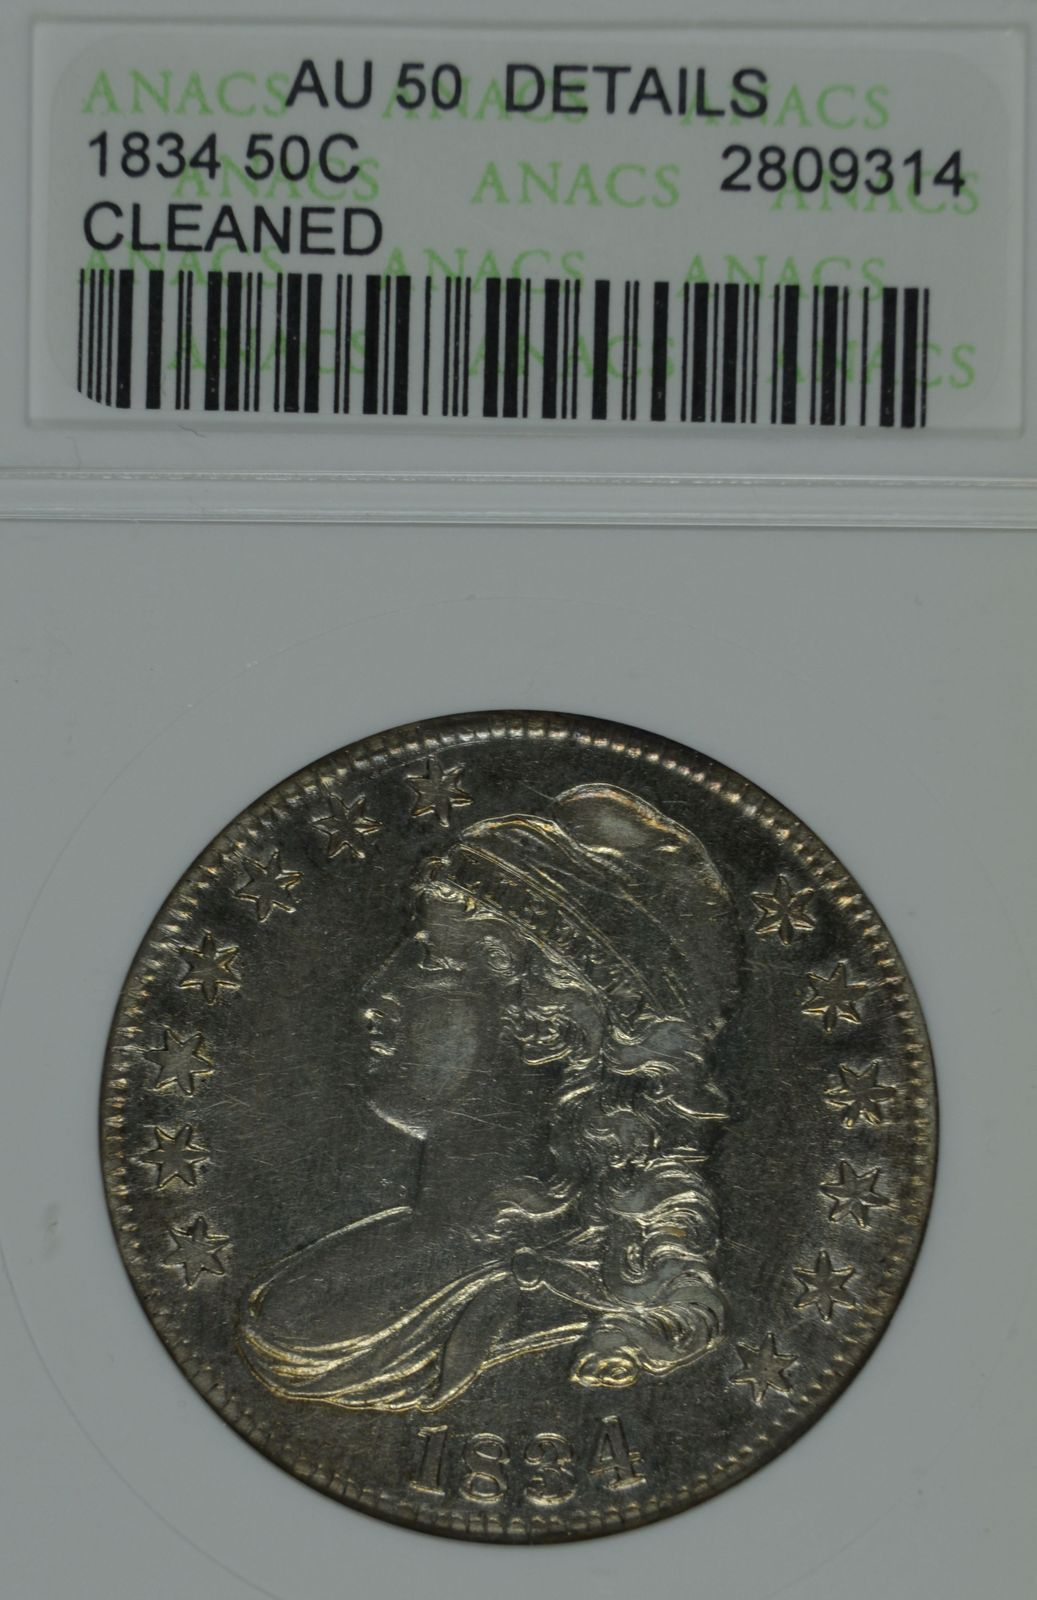 Primary image for 1834 Capped Bust circulated silver half dollar ANACS AU 50 details Cleaned